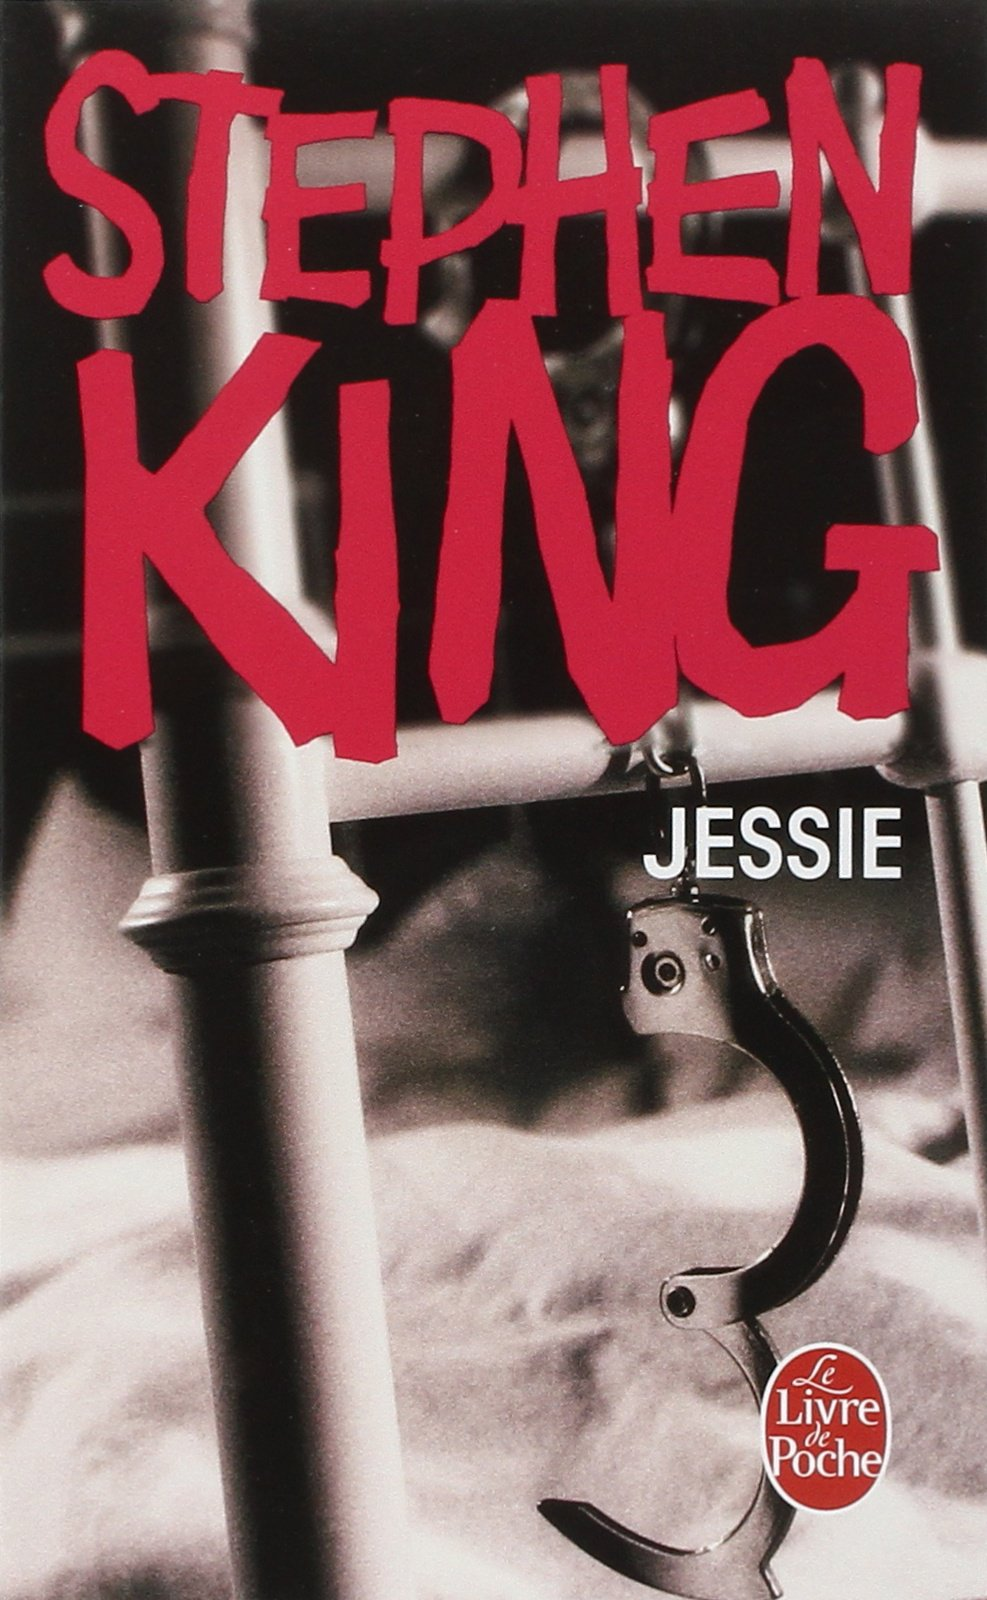 Jessie Poche – 13 juin 2001 Stephen King Le Livre de Poche 2253147702 FICTION / Fantasy / General